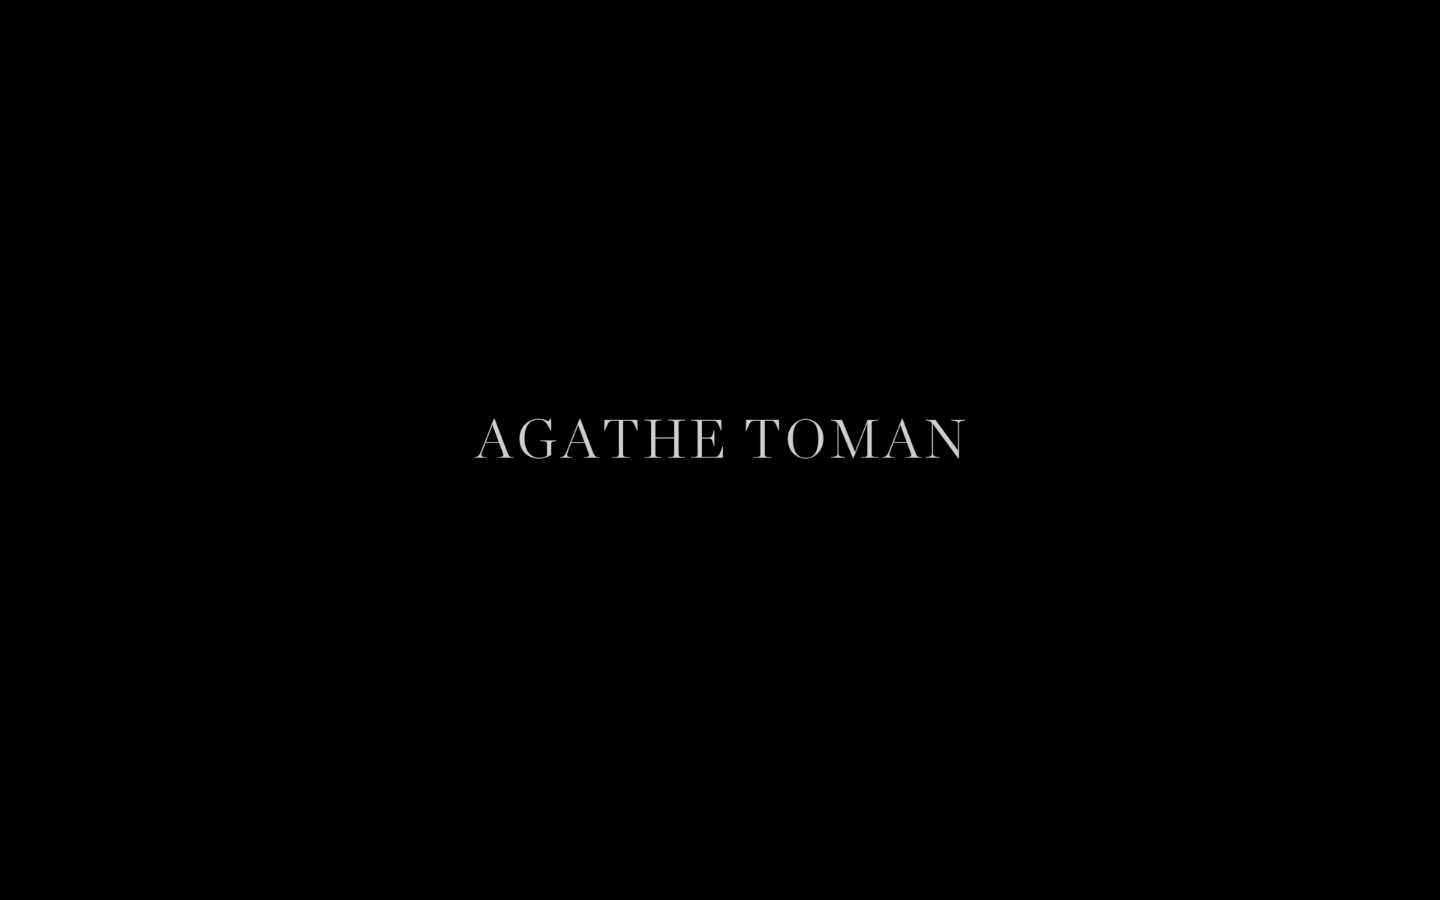 Agathe Toman Video Trailer De Anima Claudia Lederer